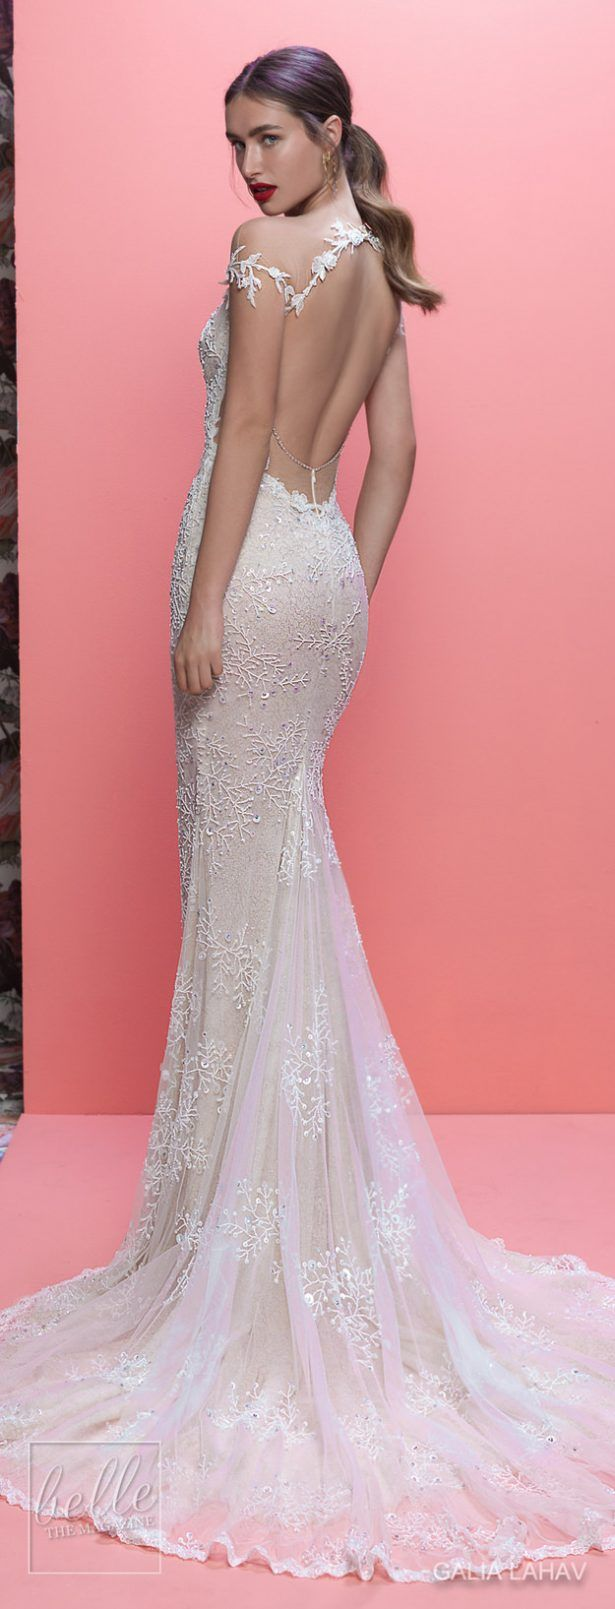 327 best Wedding Dresses images on Pinterest | Beautiful gowns ...